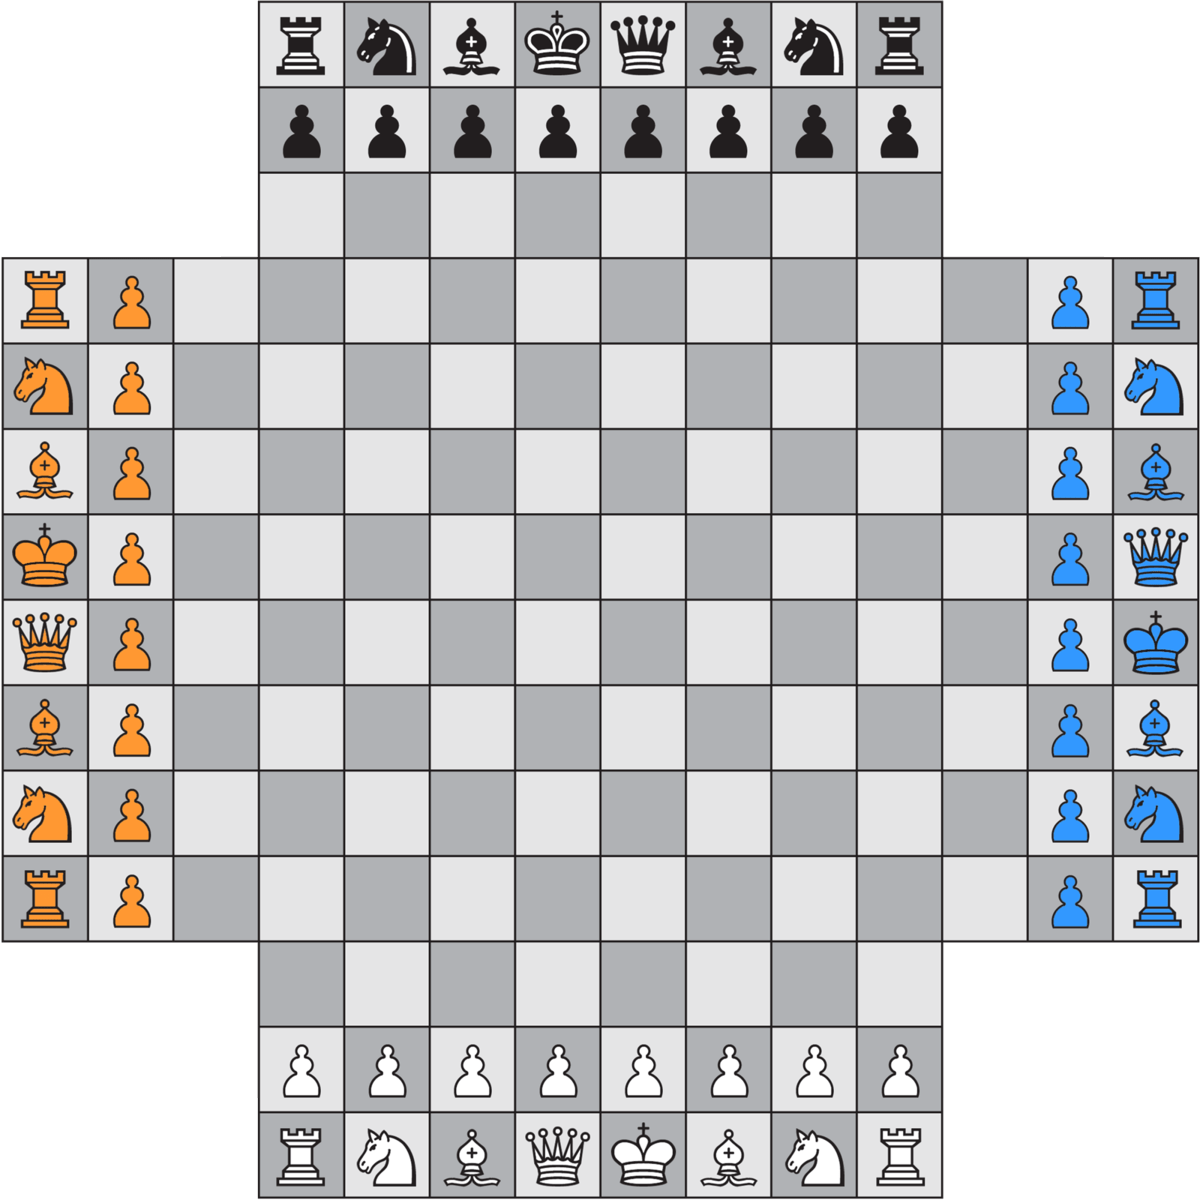 4 way chess online mcb board wiring diagram four player wikipedia